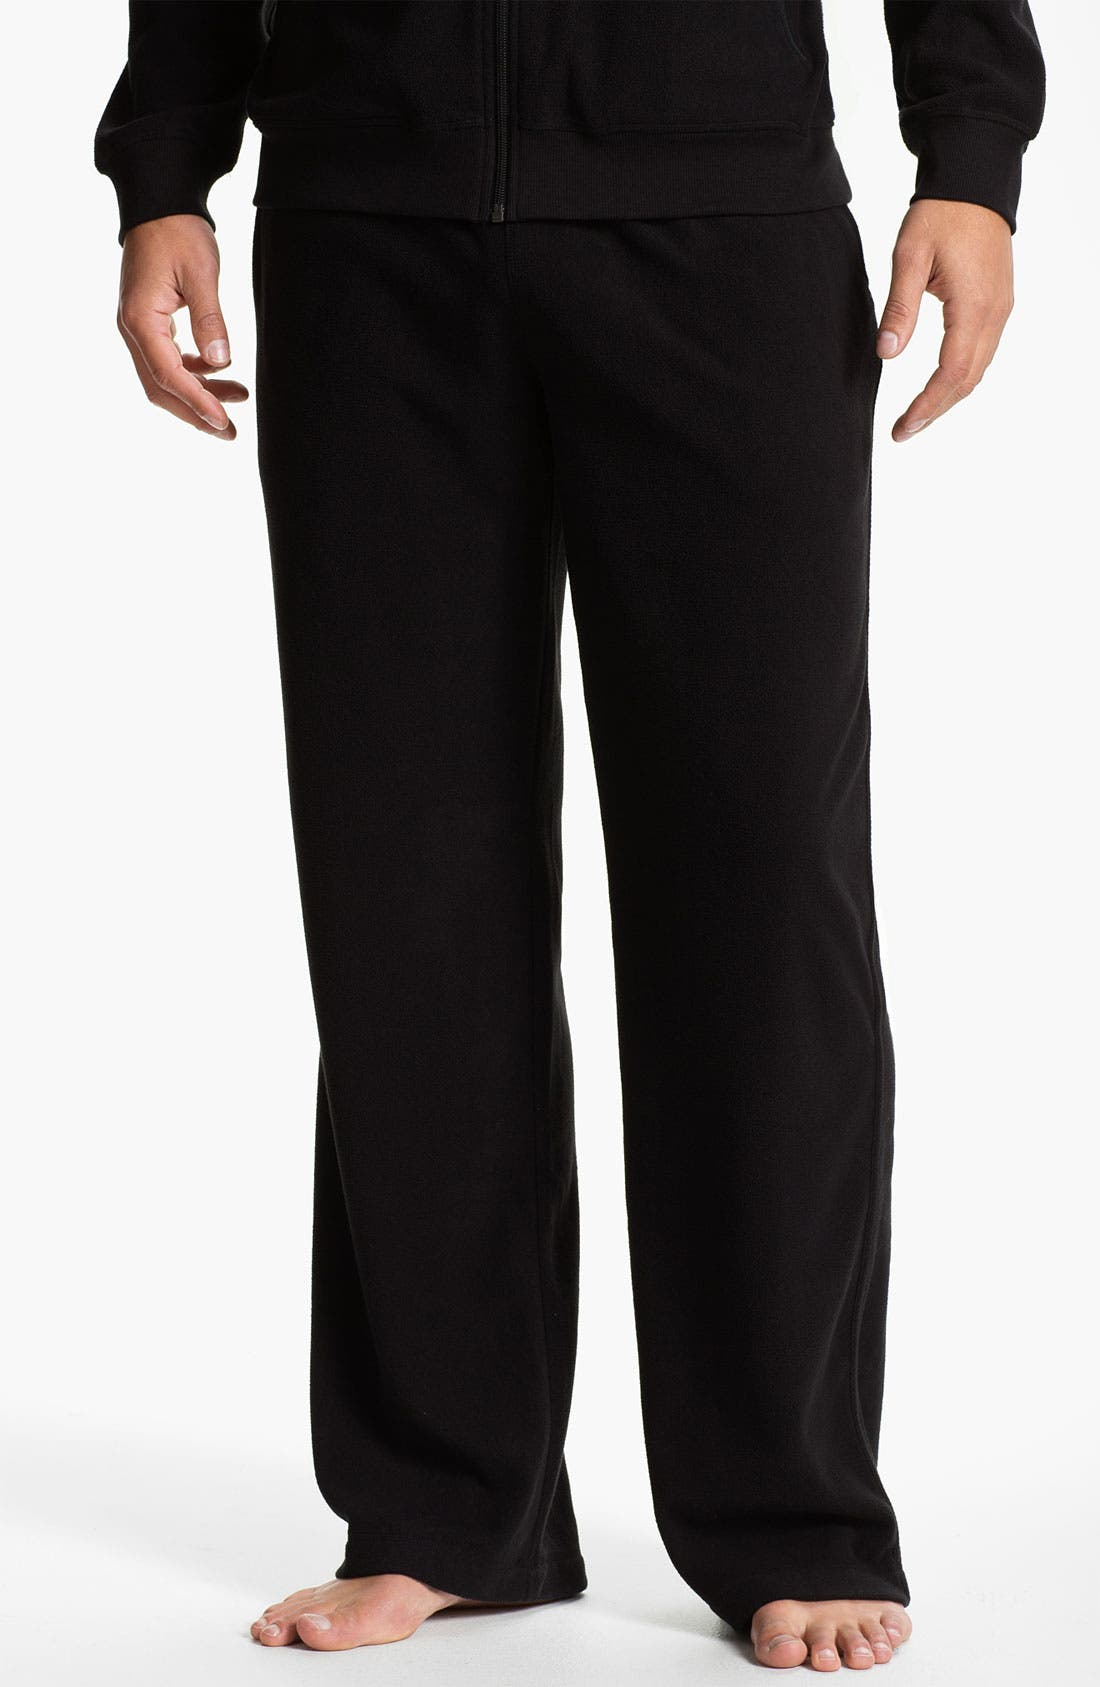 Main Image - Daniel Buchler Lightweight Fleece Lounge Pants